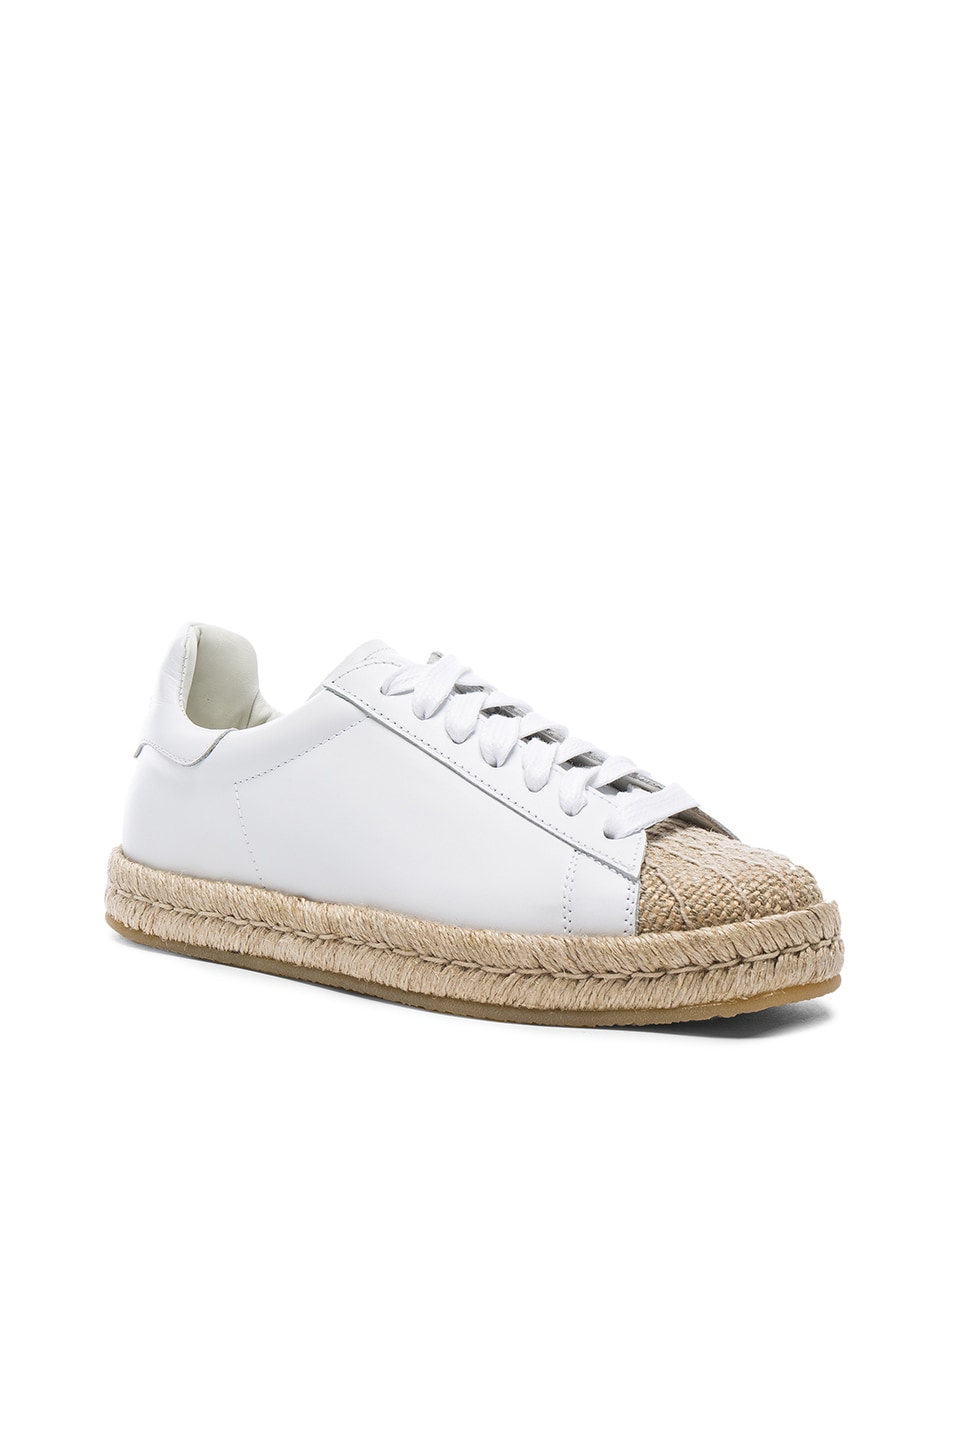 Image 2 of Alexander Wang Leather Rian Espadrilles in Optic White